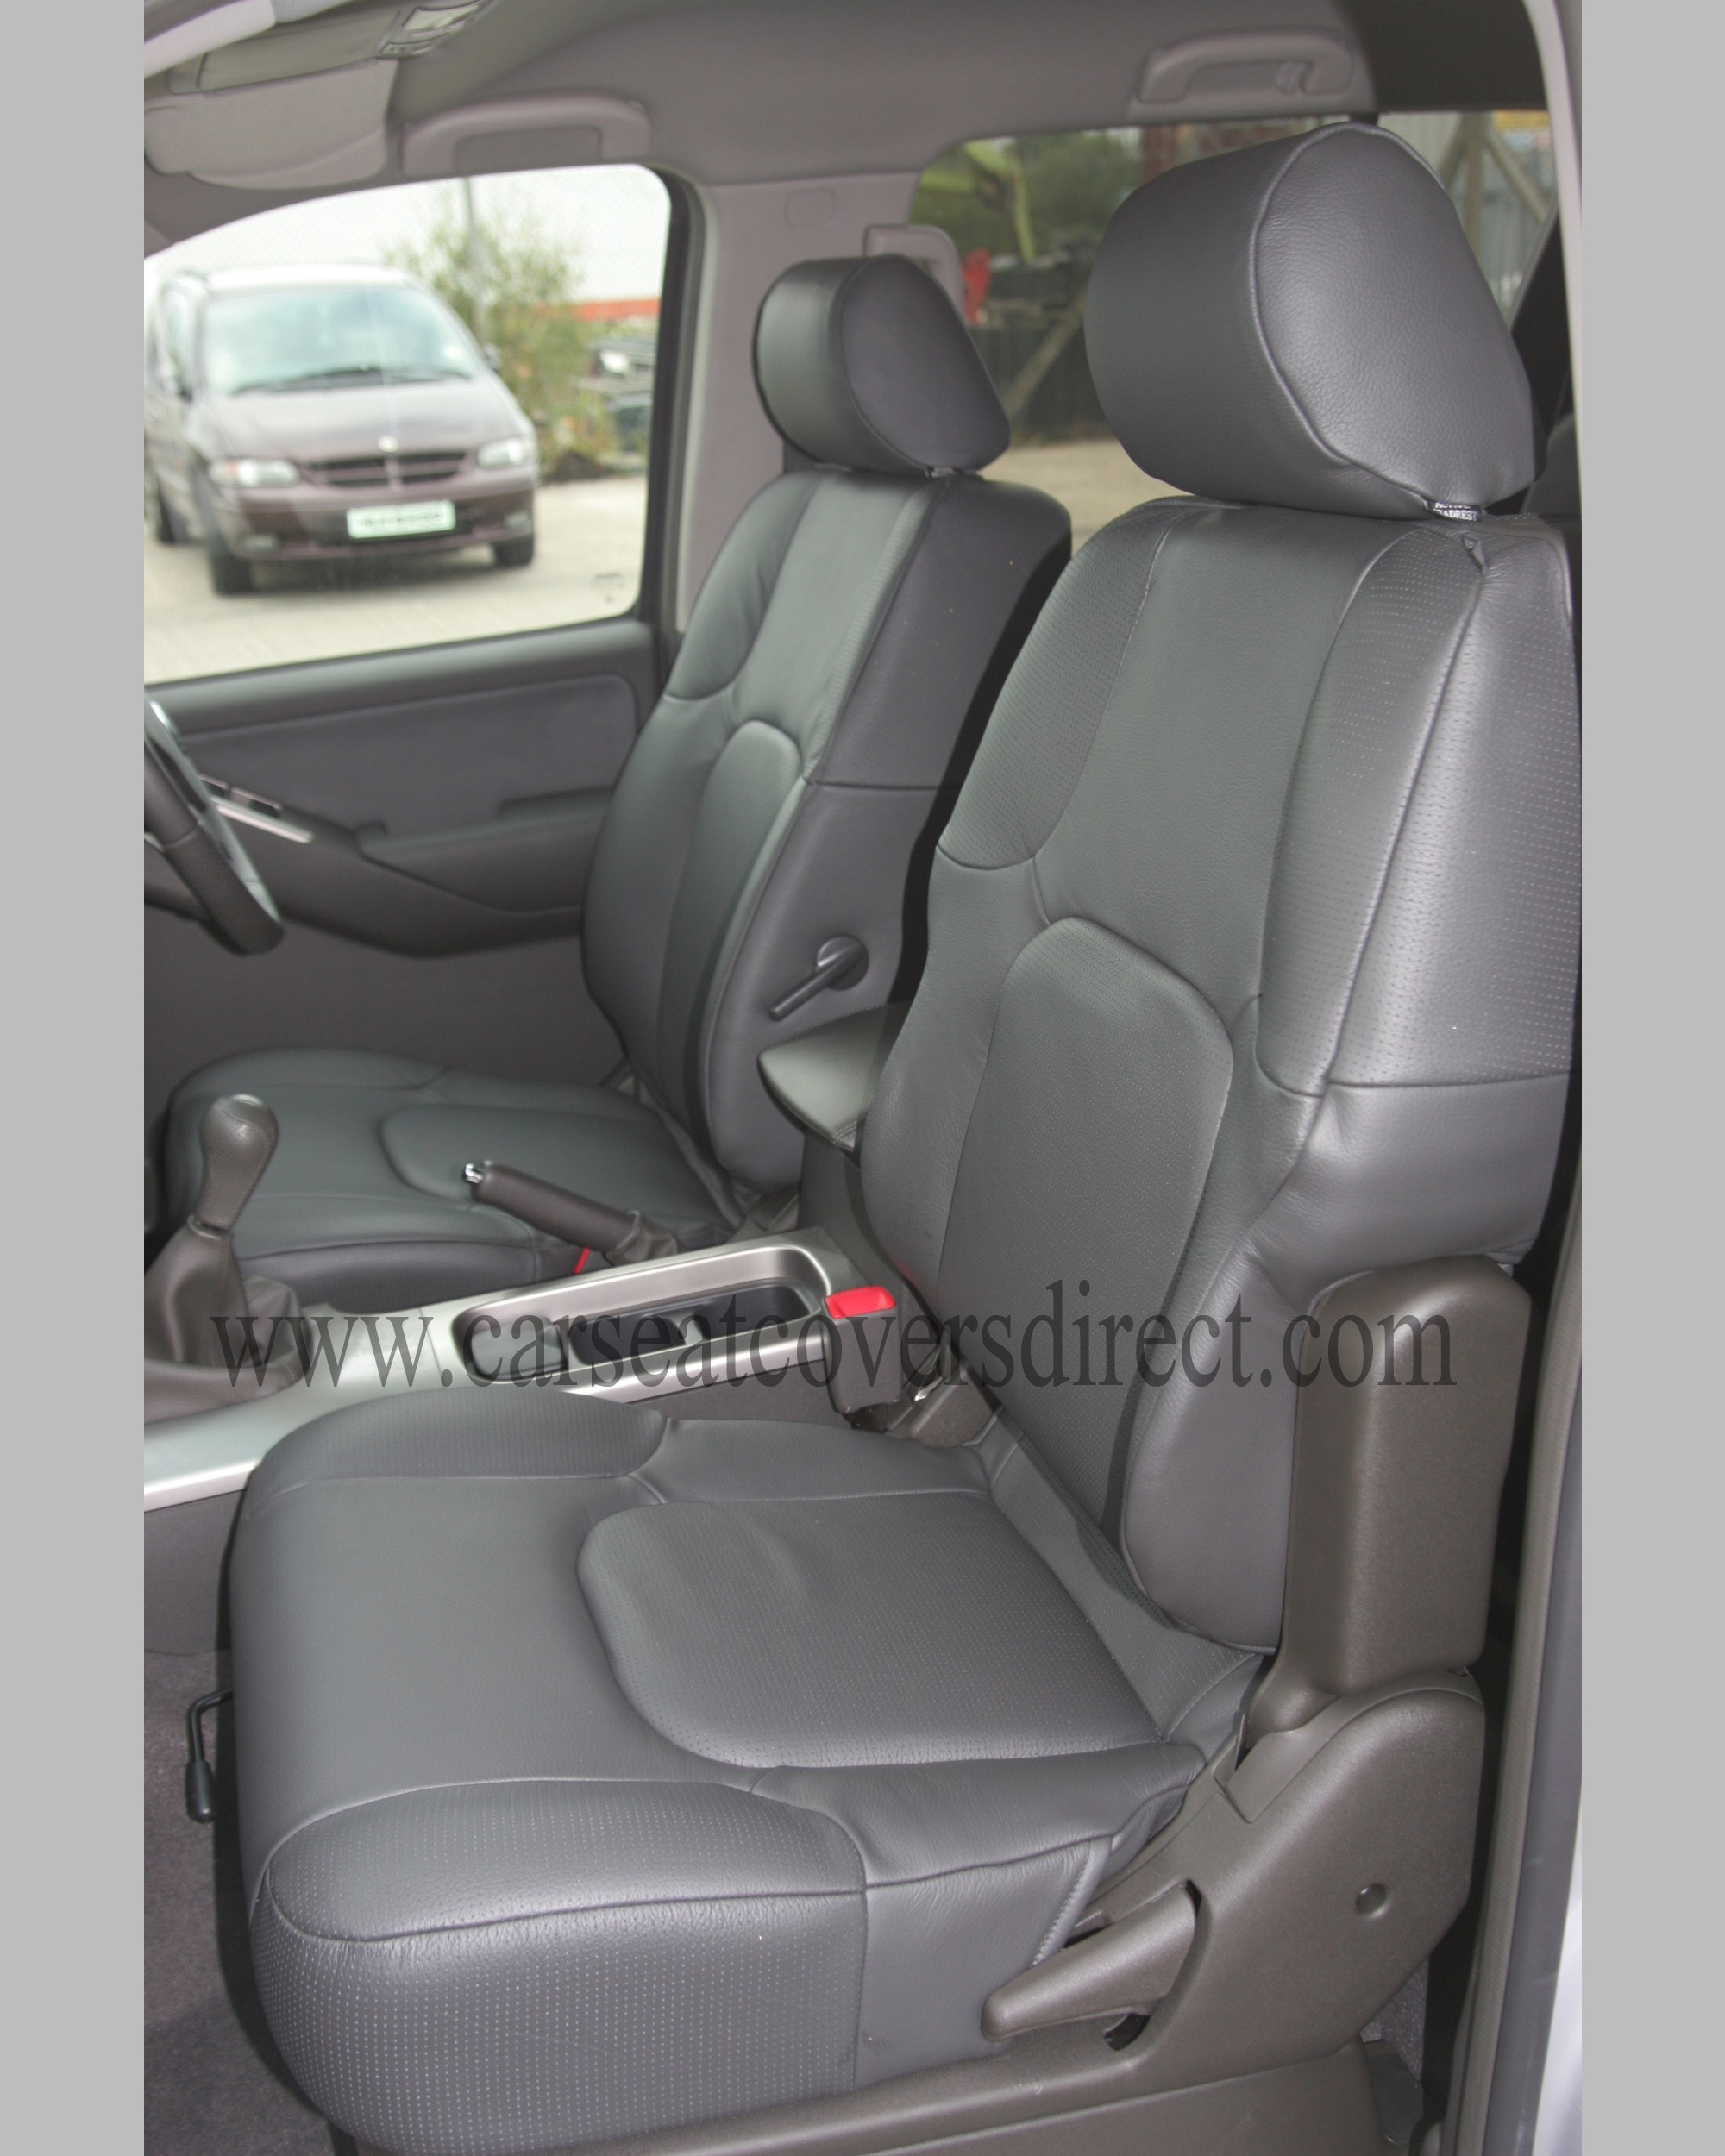 NISSAN PATHFINDER LEATHER RETRIM